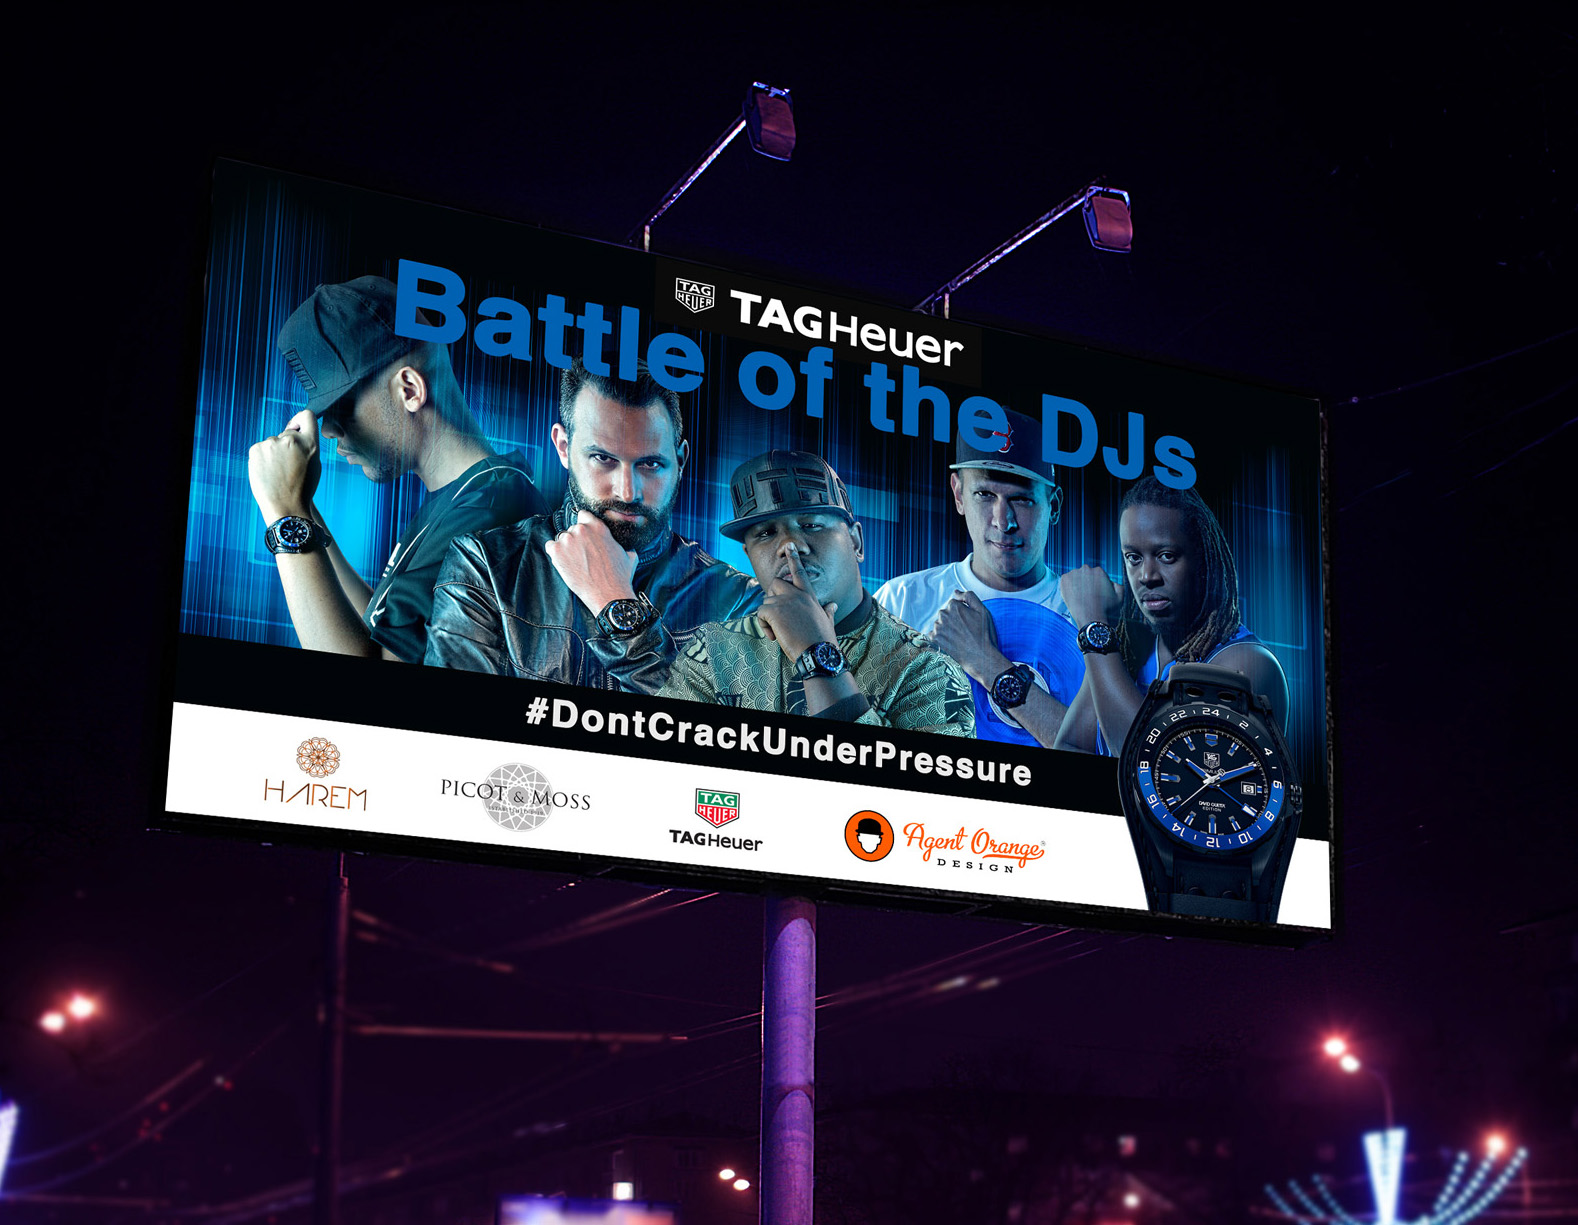 TAG Heuer Event Brandon Barnard Photographer and Graphic Design by Agent Orange South Africa